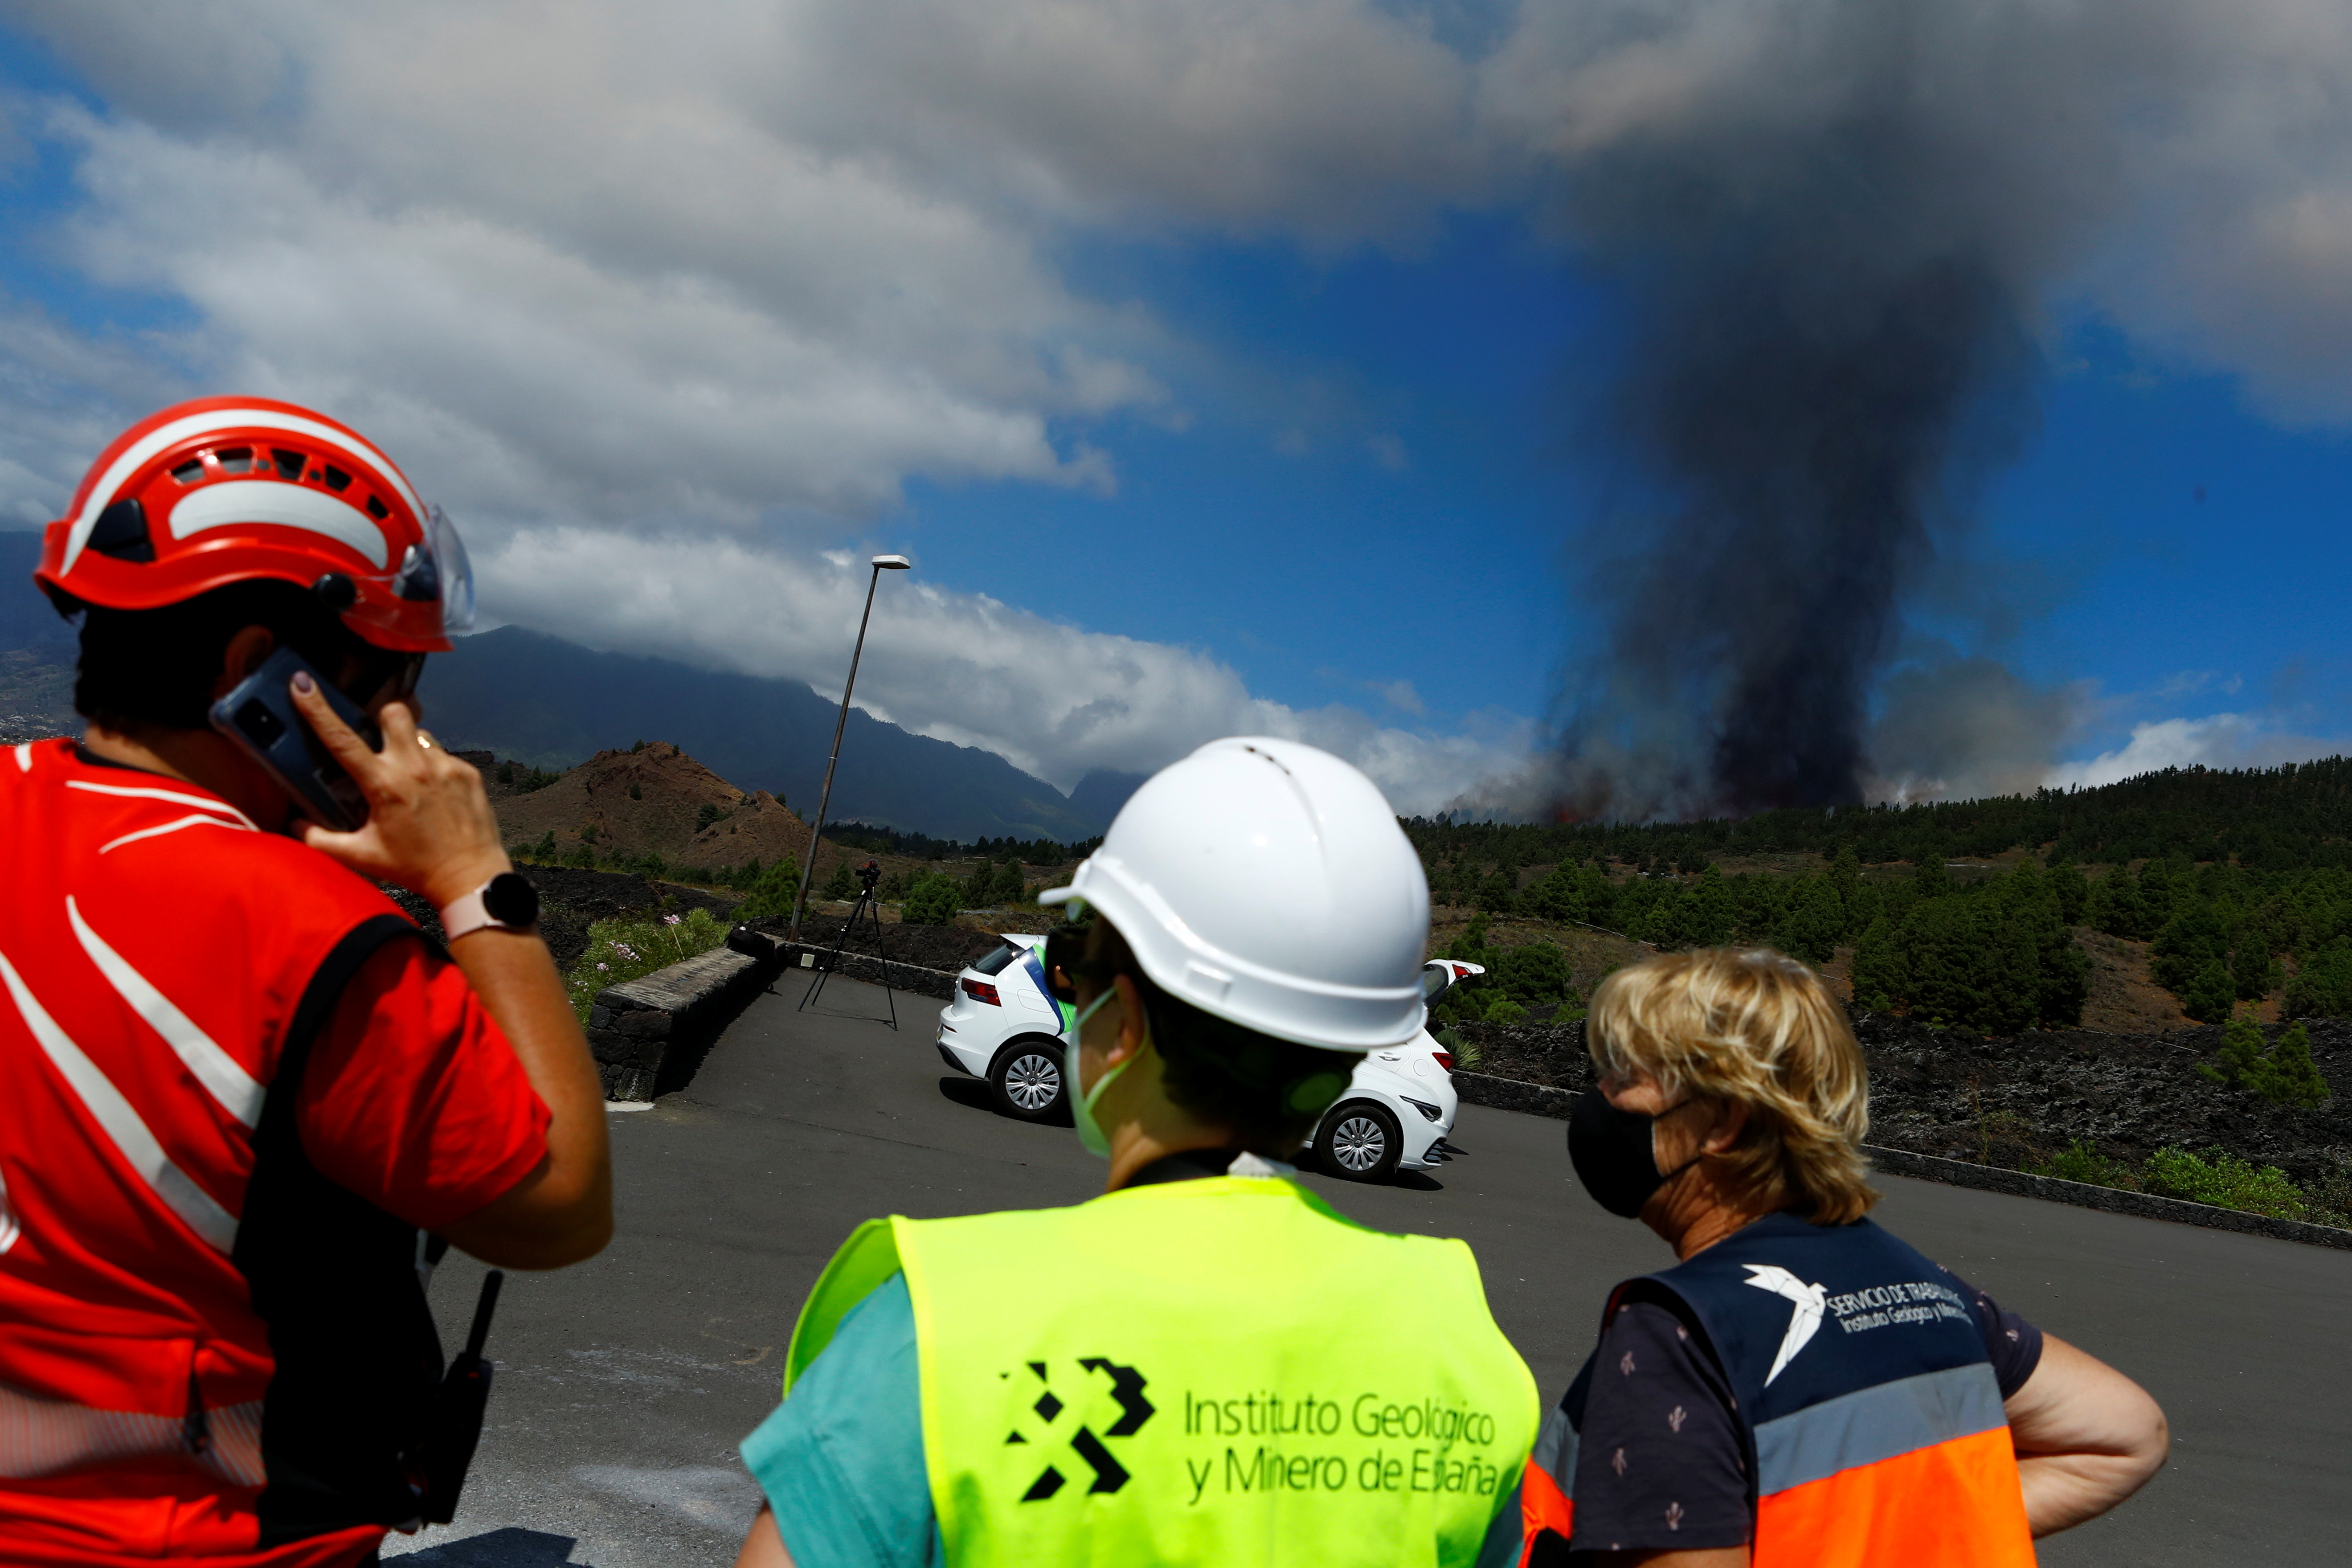 A plume of smoke rises following the eruption of a volcano in the Cumbre Vieja national park at El Paso, on the Canary Island of La Palma, September 19, 2021. REUTERS/Borja Suarez